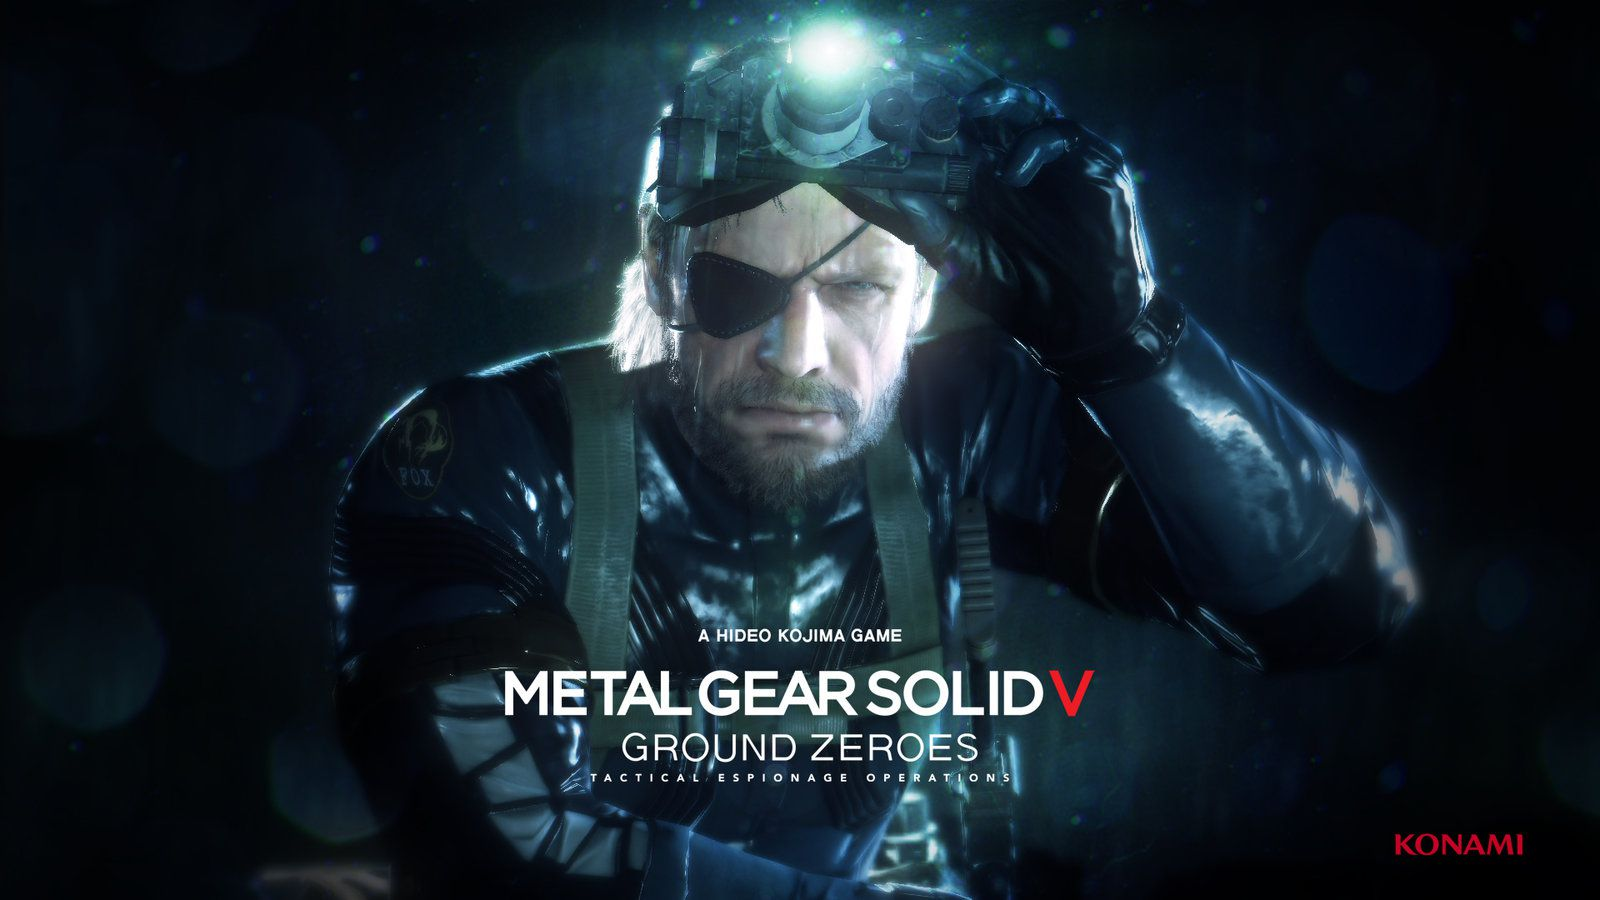 Metal Gear Solid 5 The Phantom Pain am 17. März 2015?